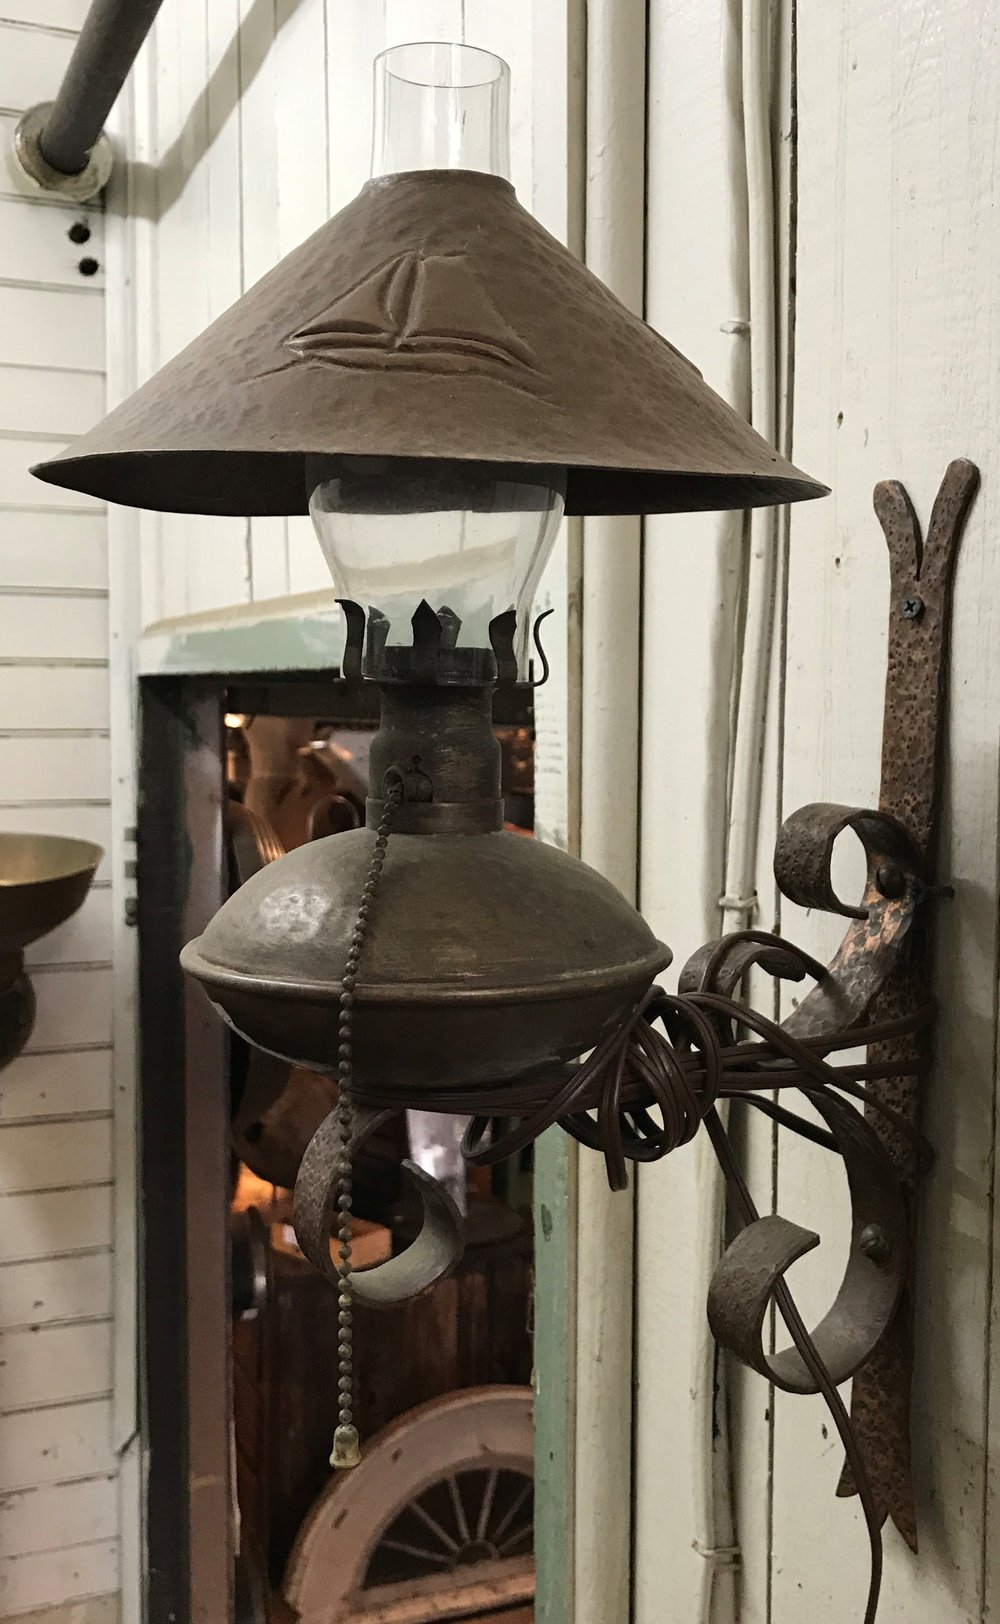 Vintage Hammered Copper Wall Sconce w/Sailboat